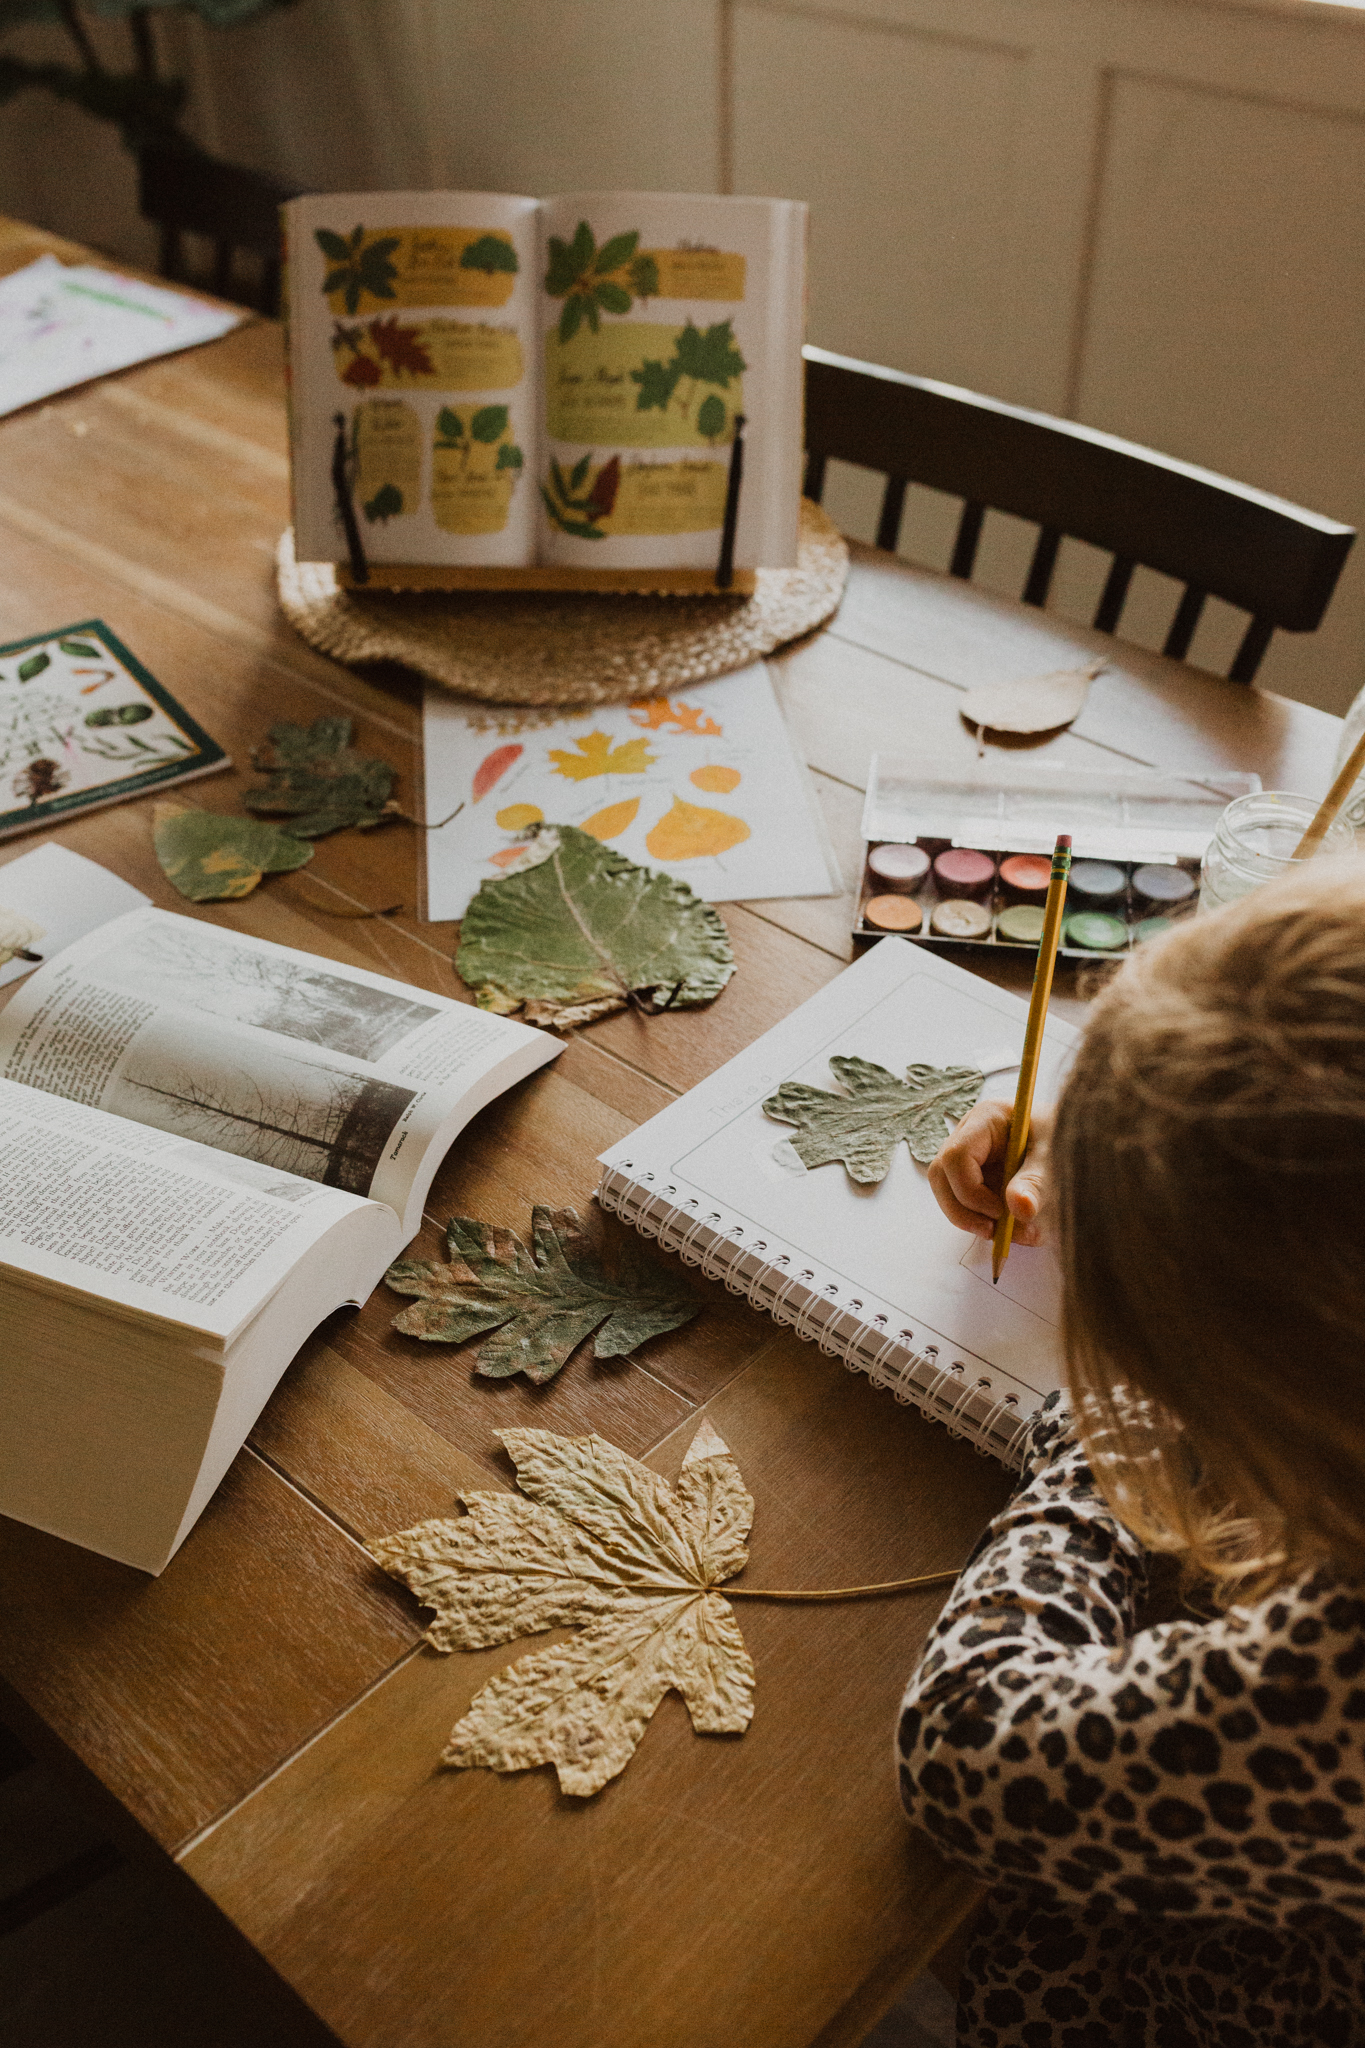 A Day in Our Homeschool Life | Autumn 2020 (Video)